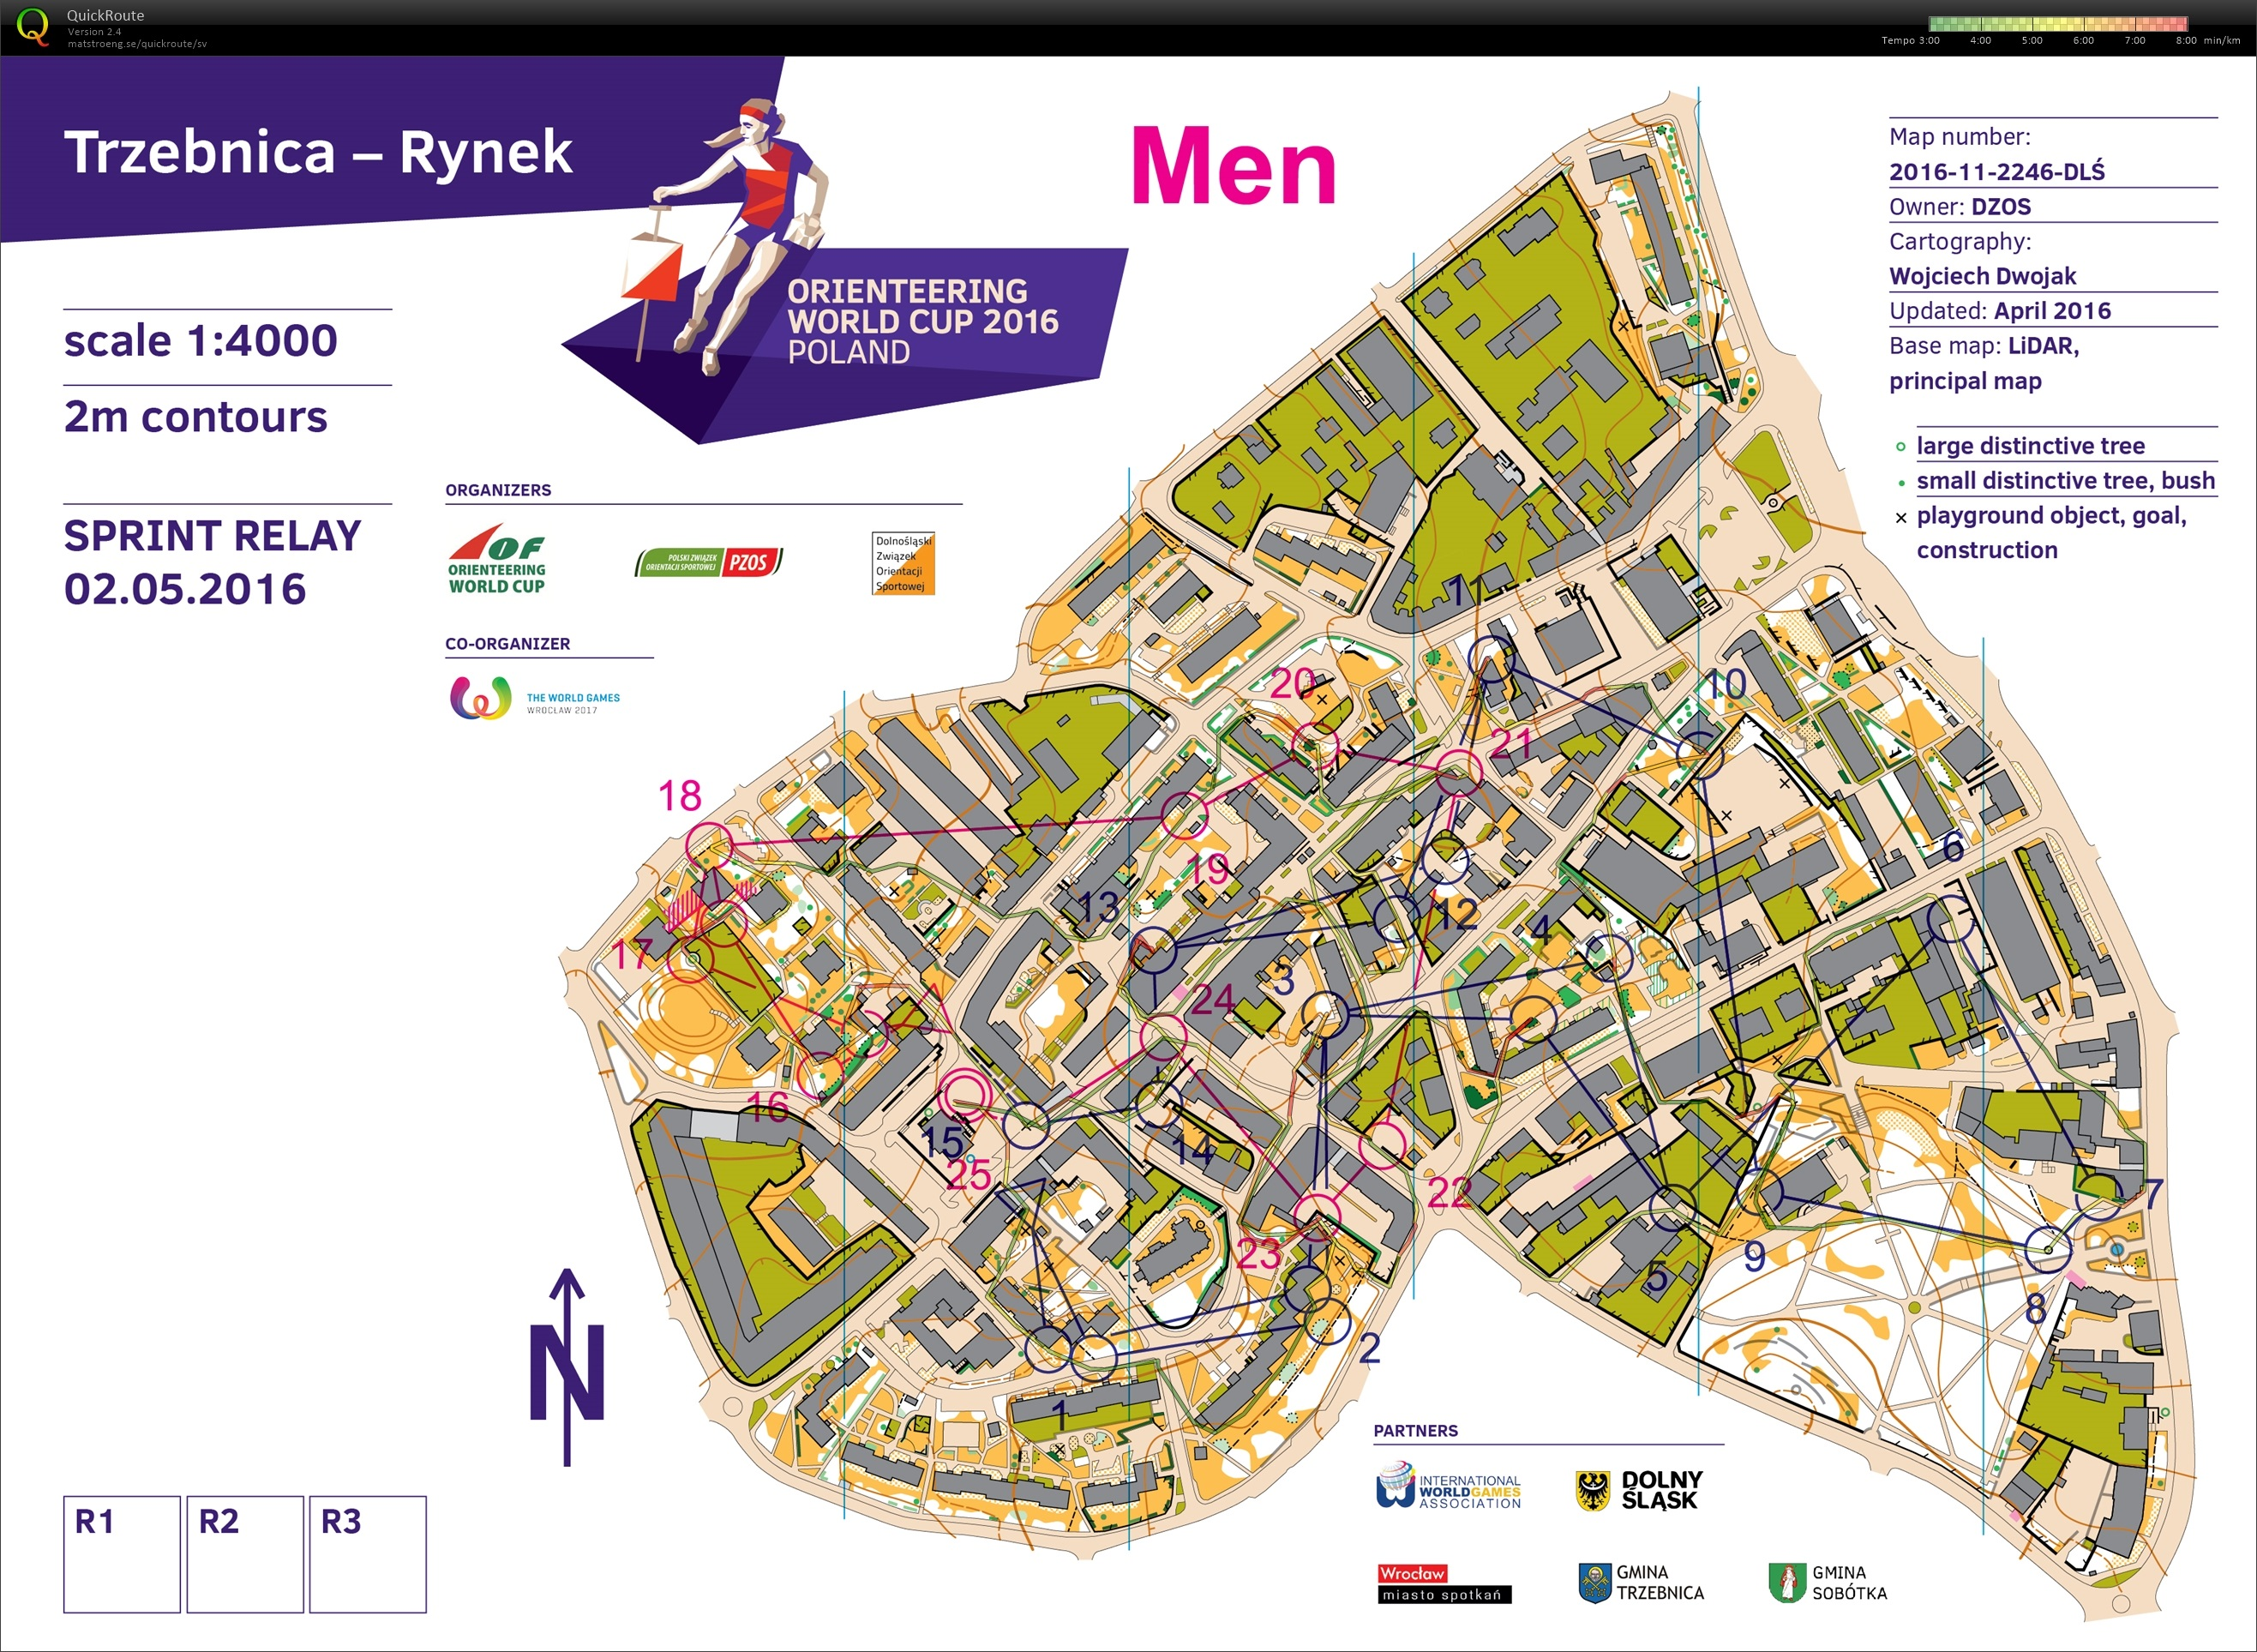 World Cup - Sprint Relay (2016-05-02)